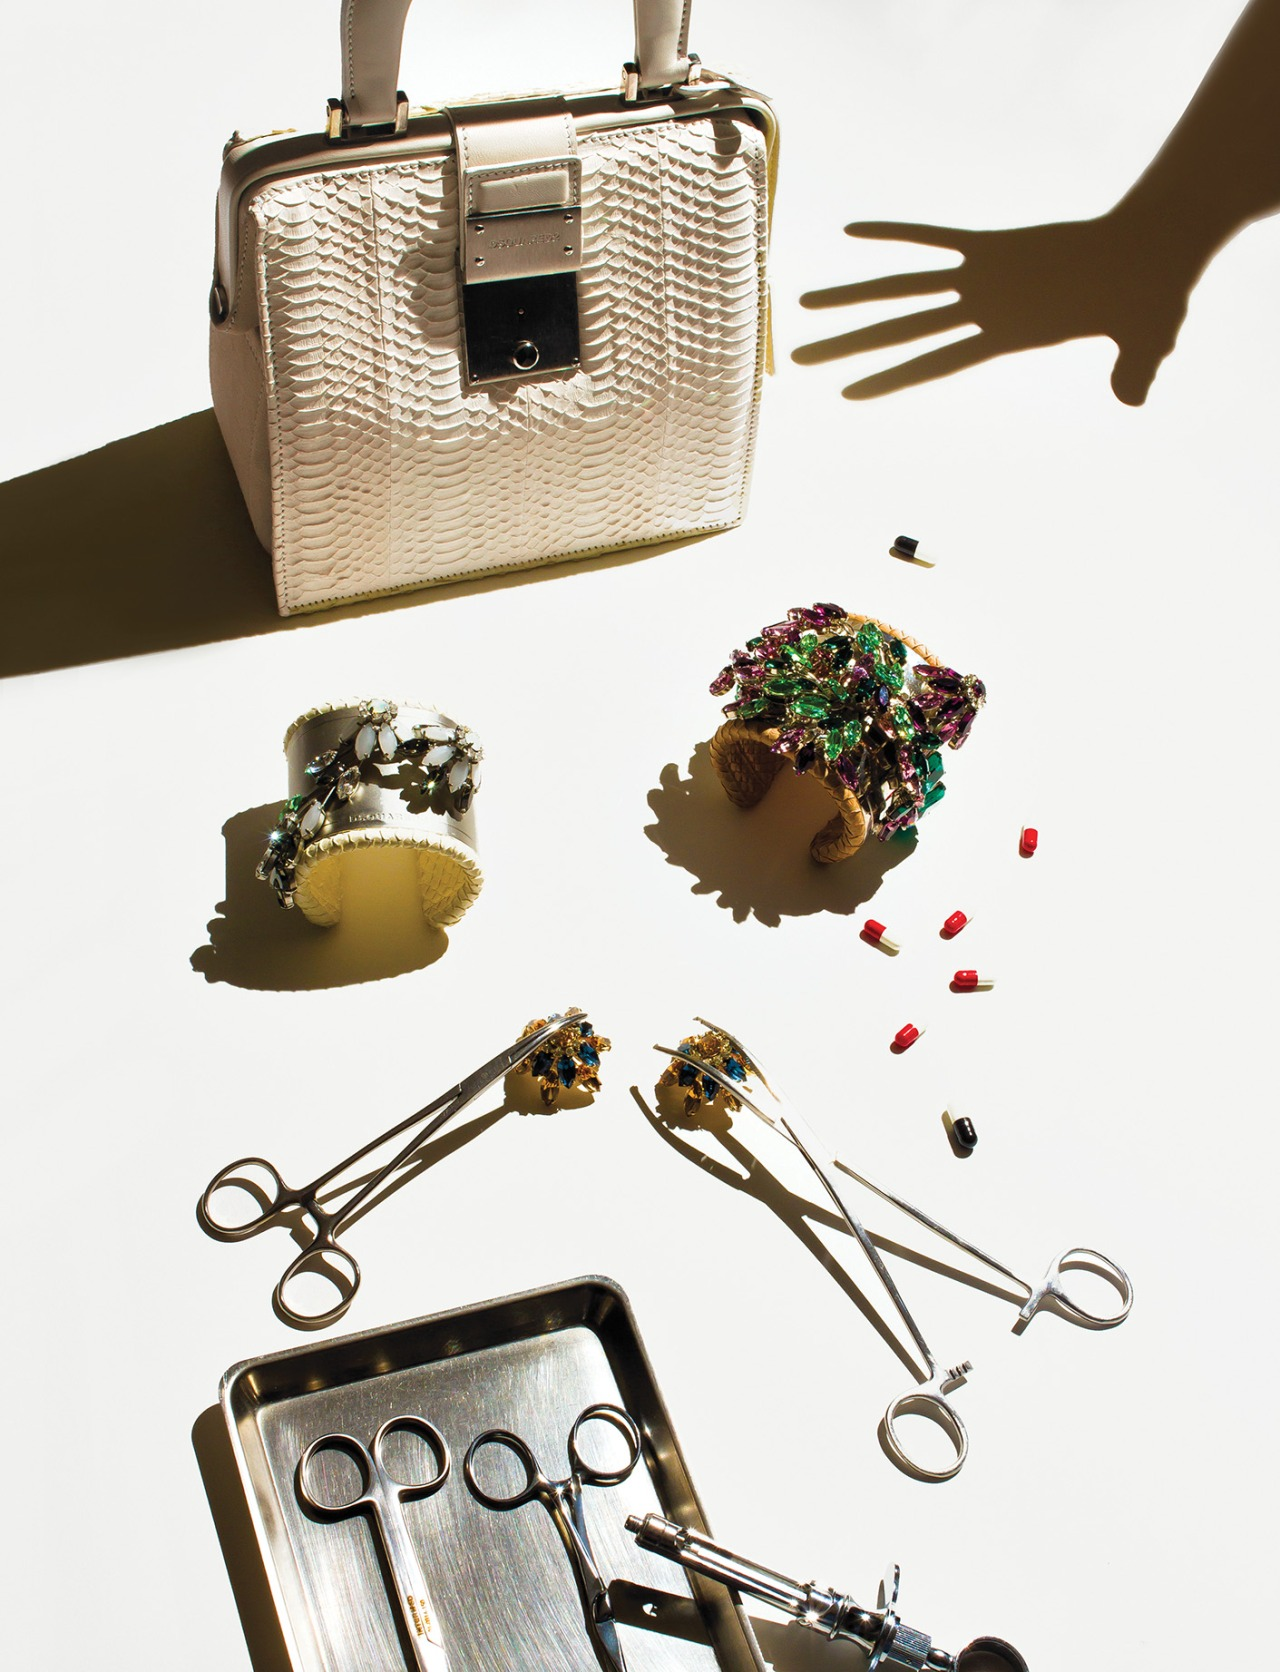 DSQUARED2 ACCESSORIES A/W 2014-15 FOR ELLE UK